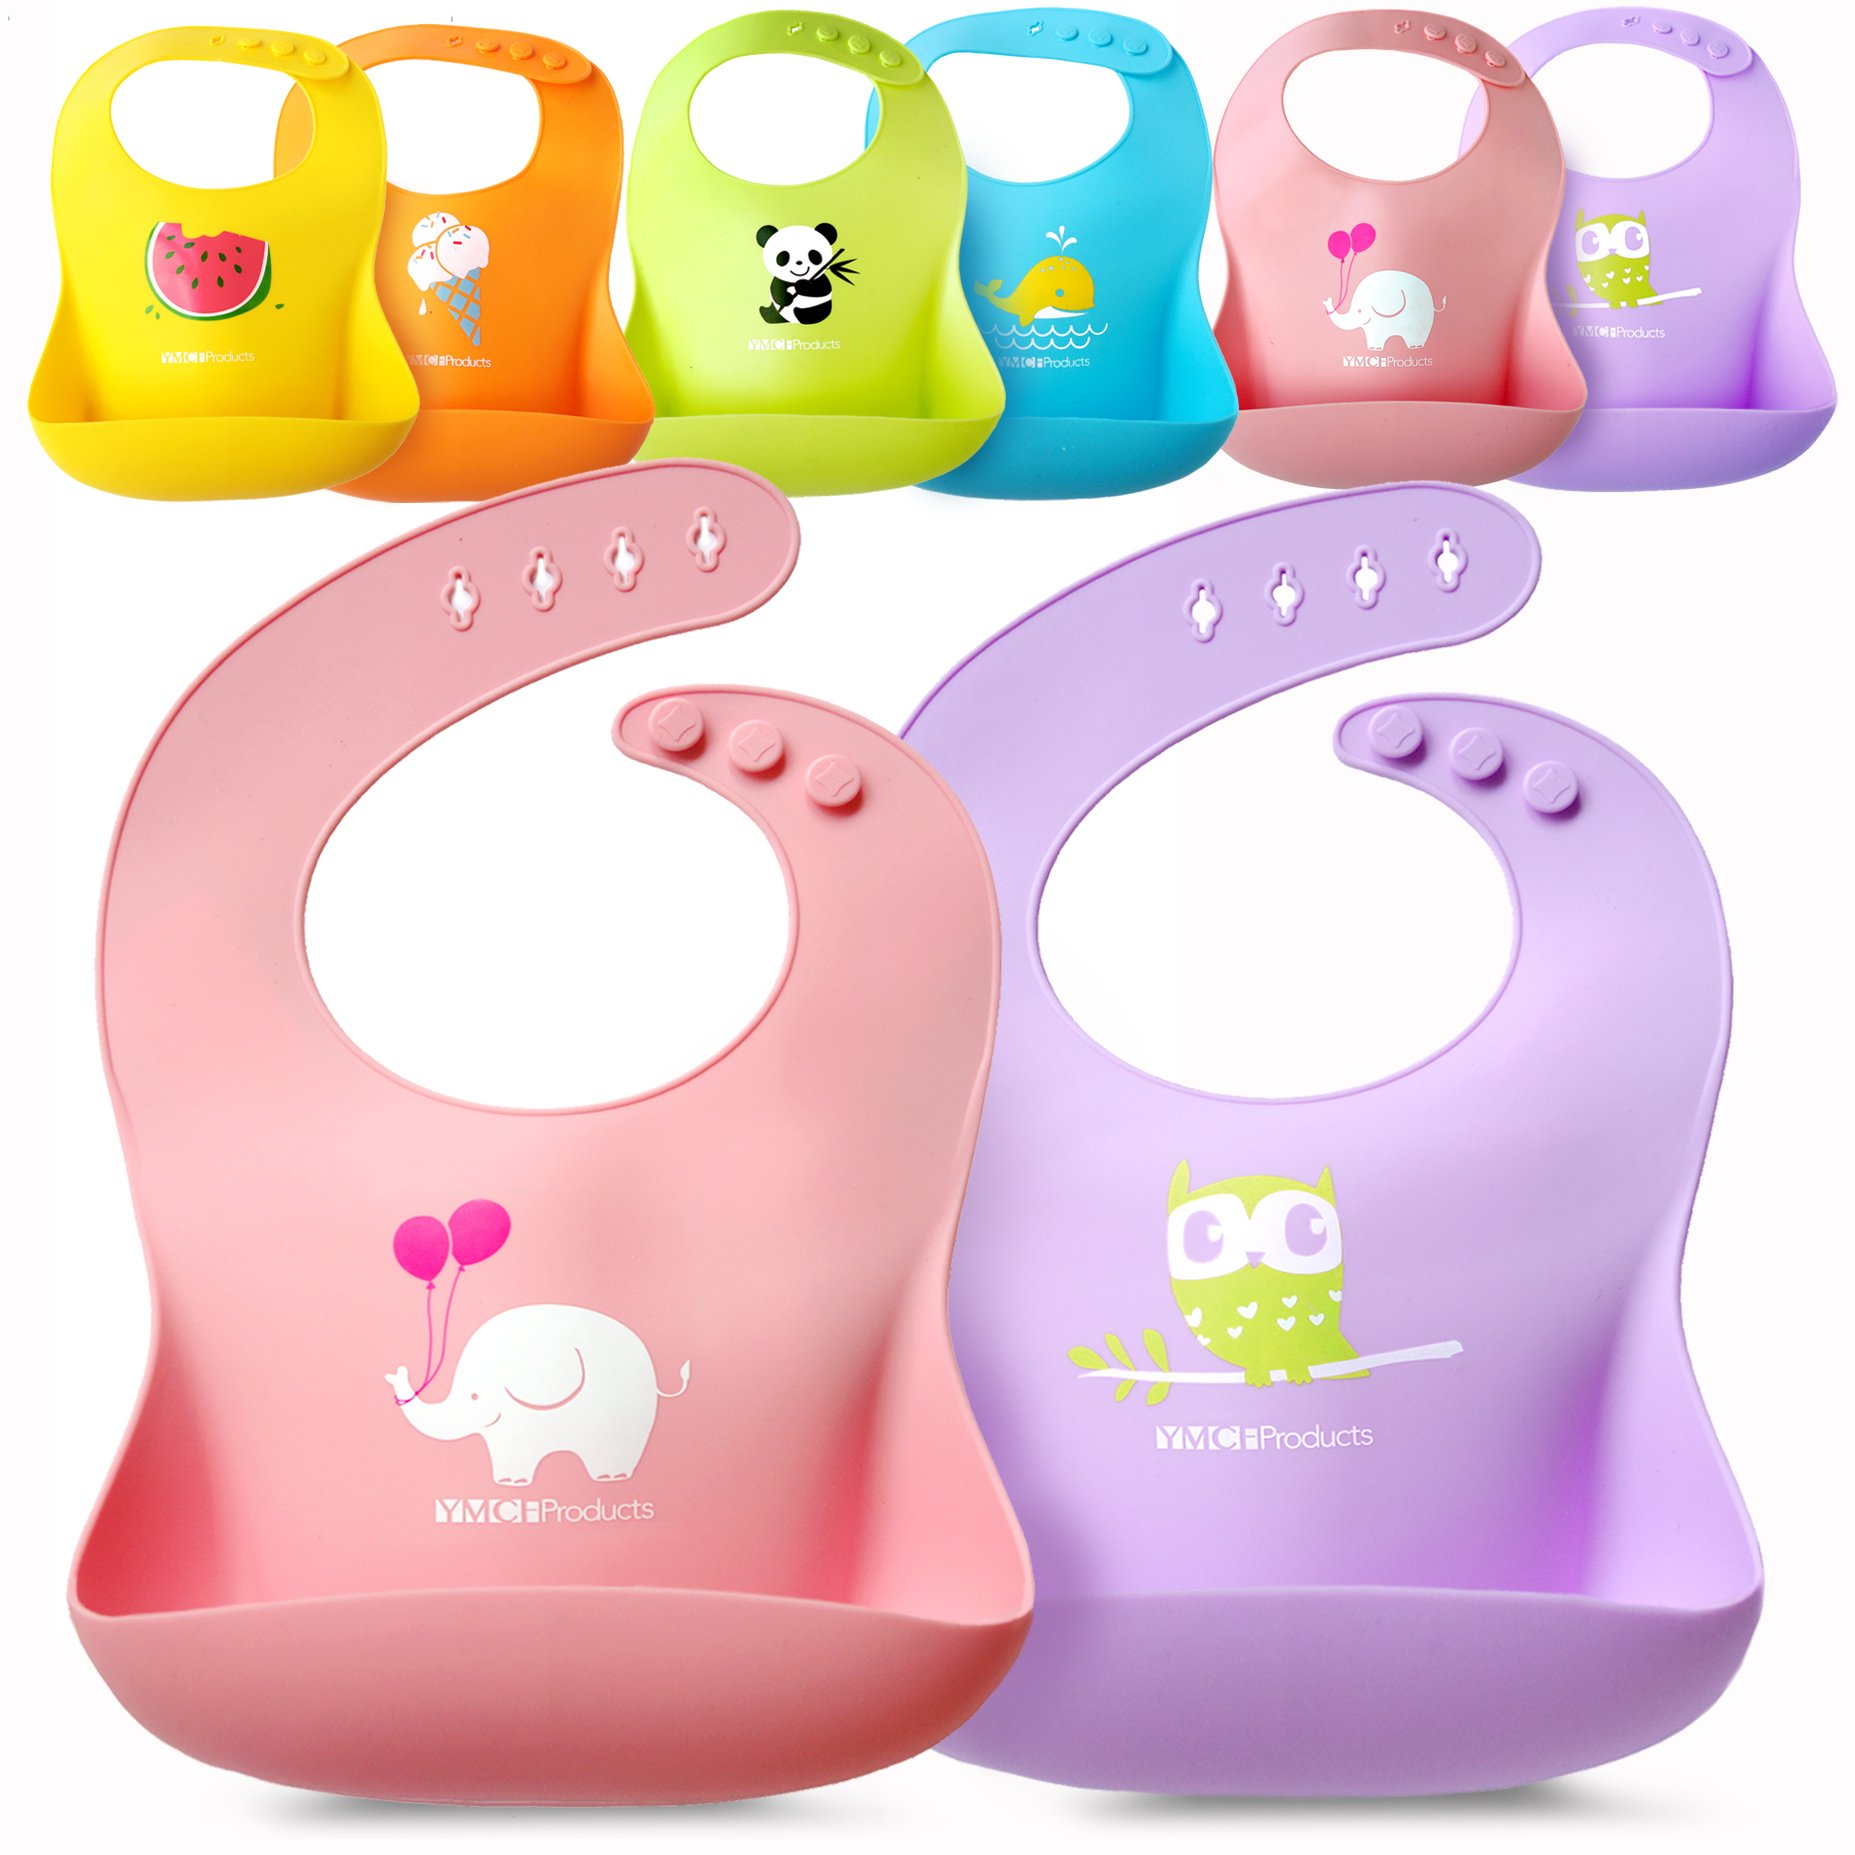 Single Set of 2 Waterproof Silicone Baby Bib Light Weight Comfortable Easy Wipe(Pink/Purple)